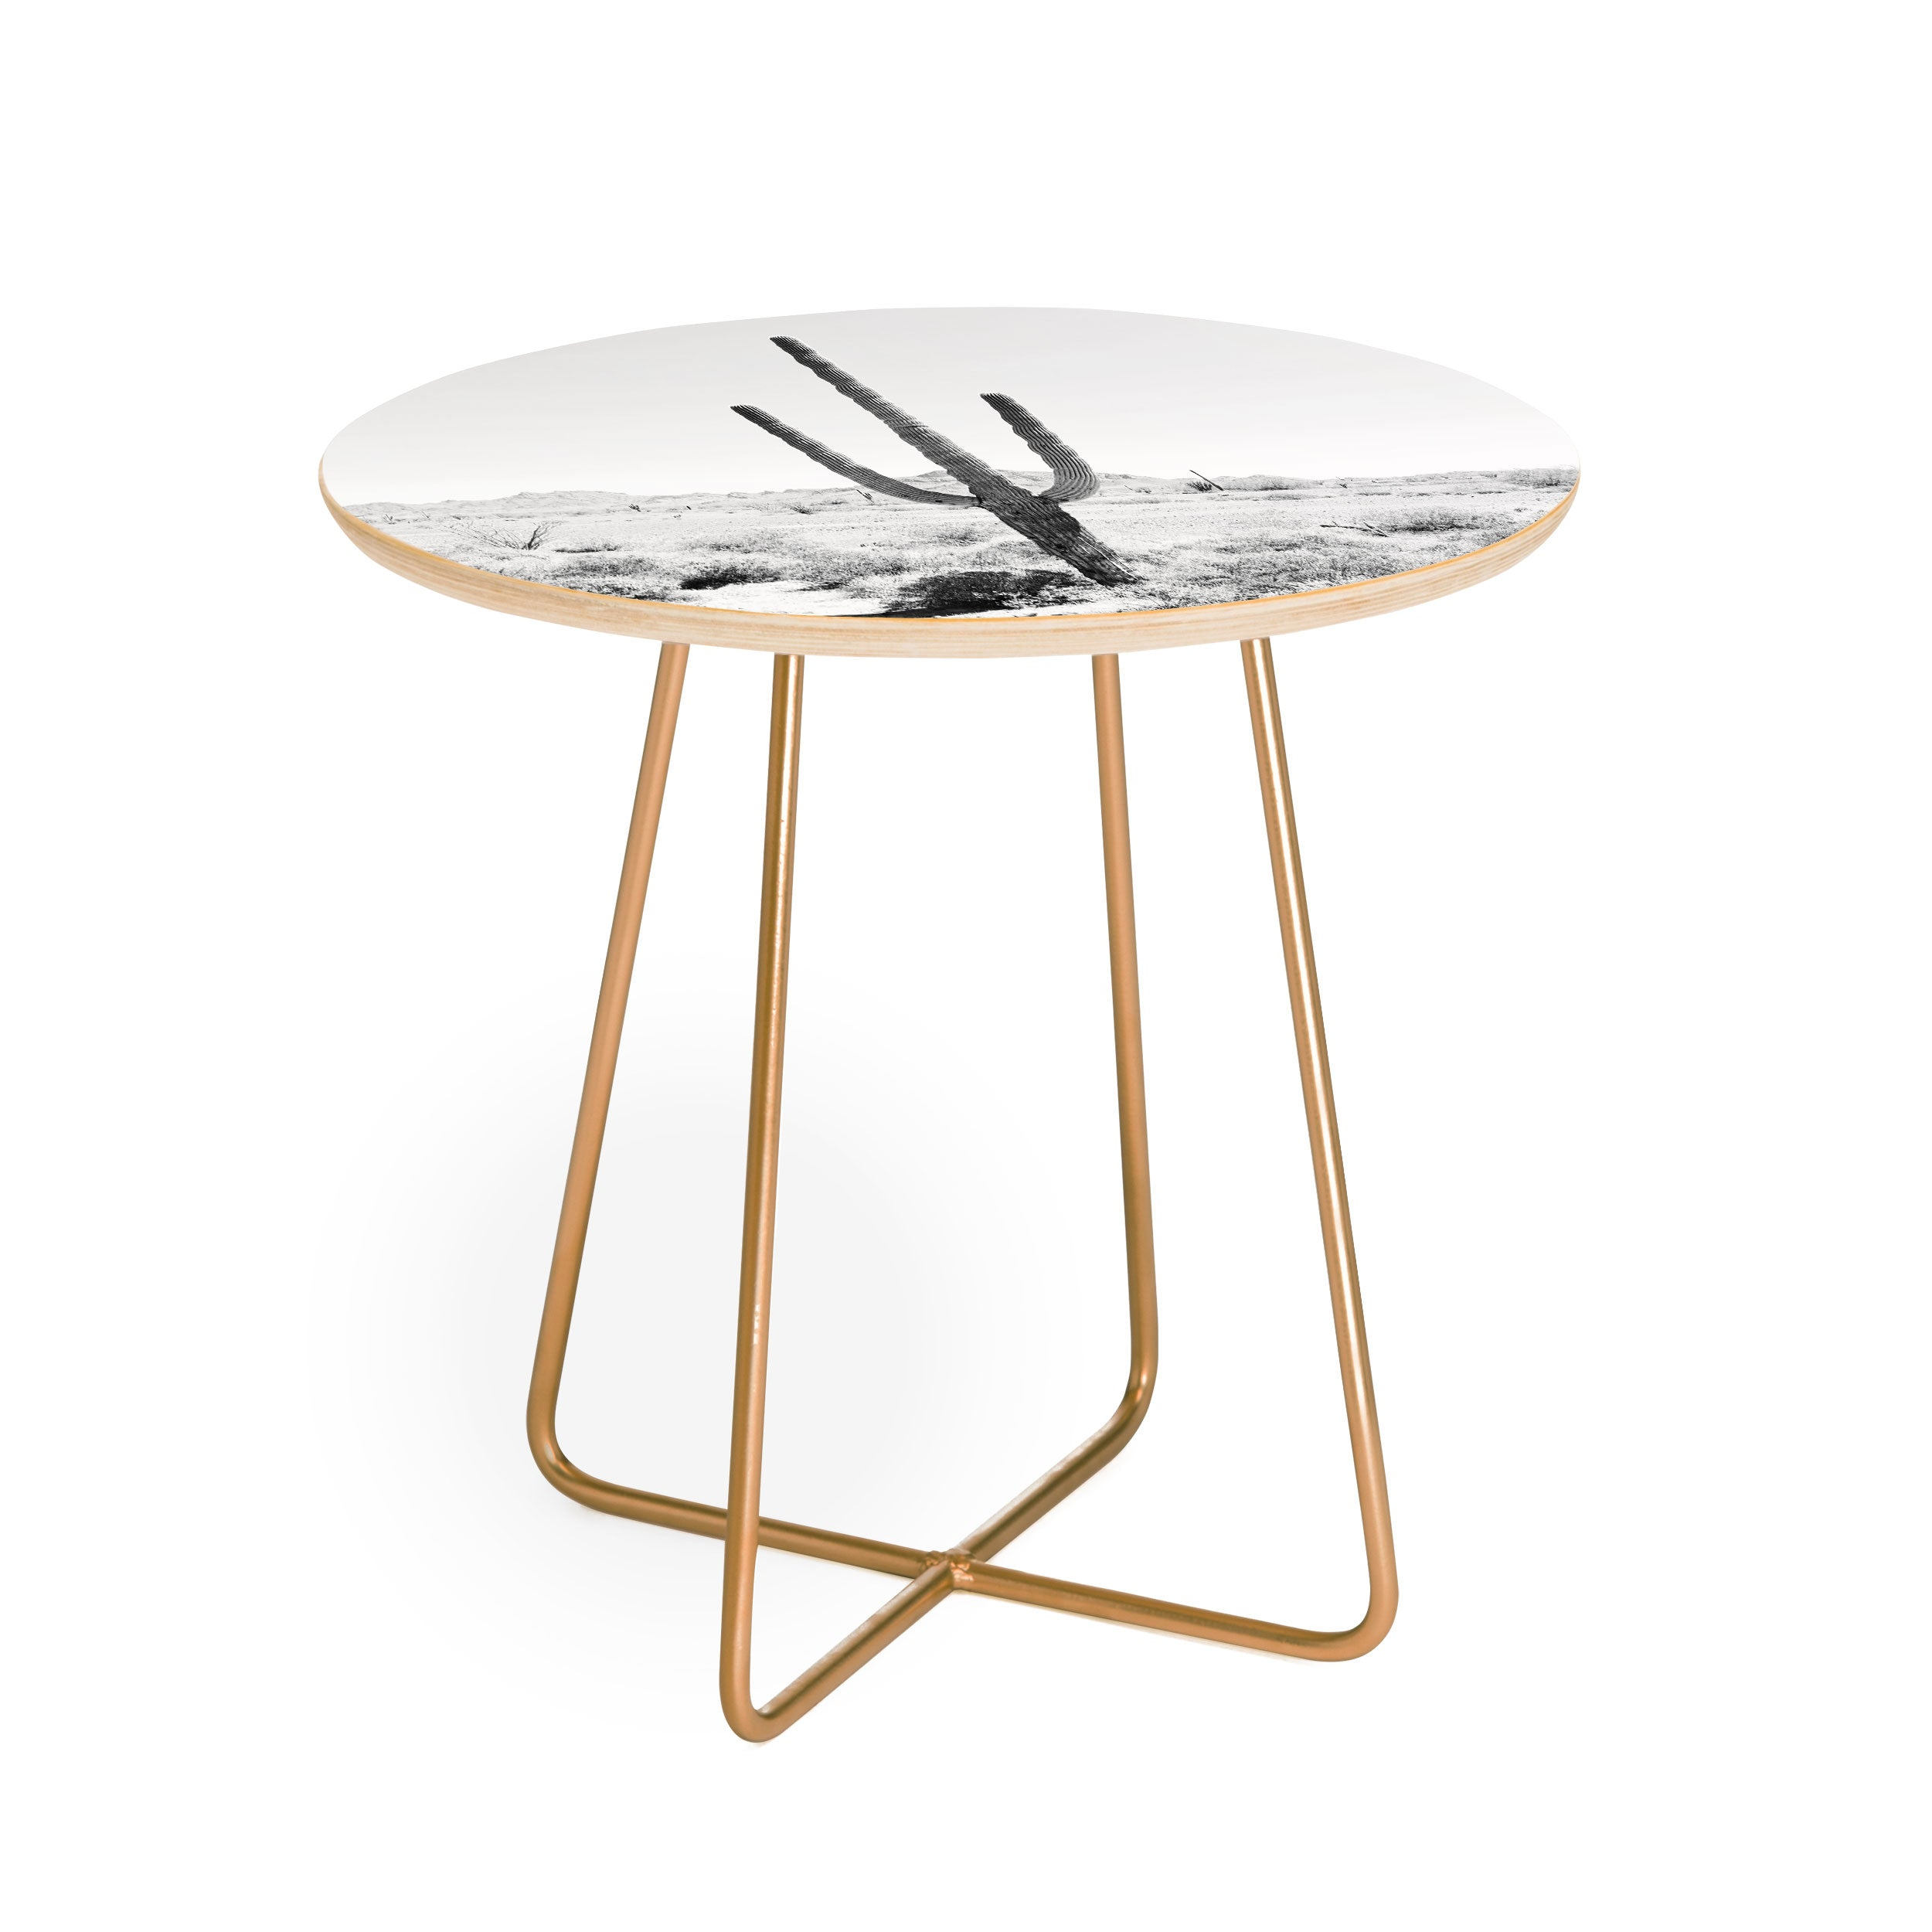 Bree Madden Desert Times Round Side Table